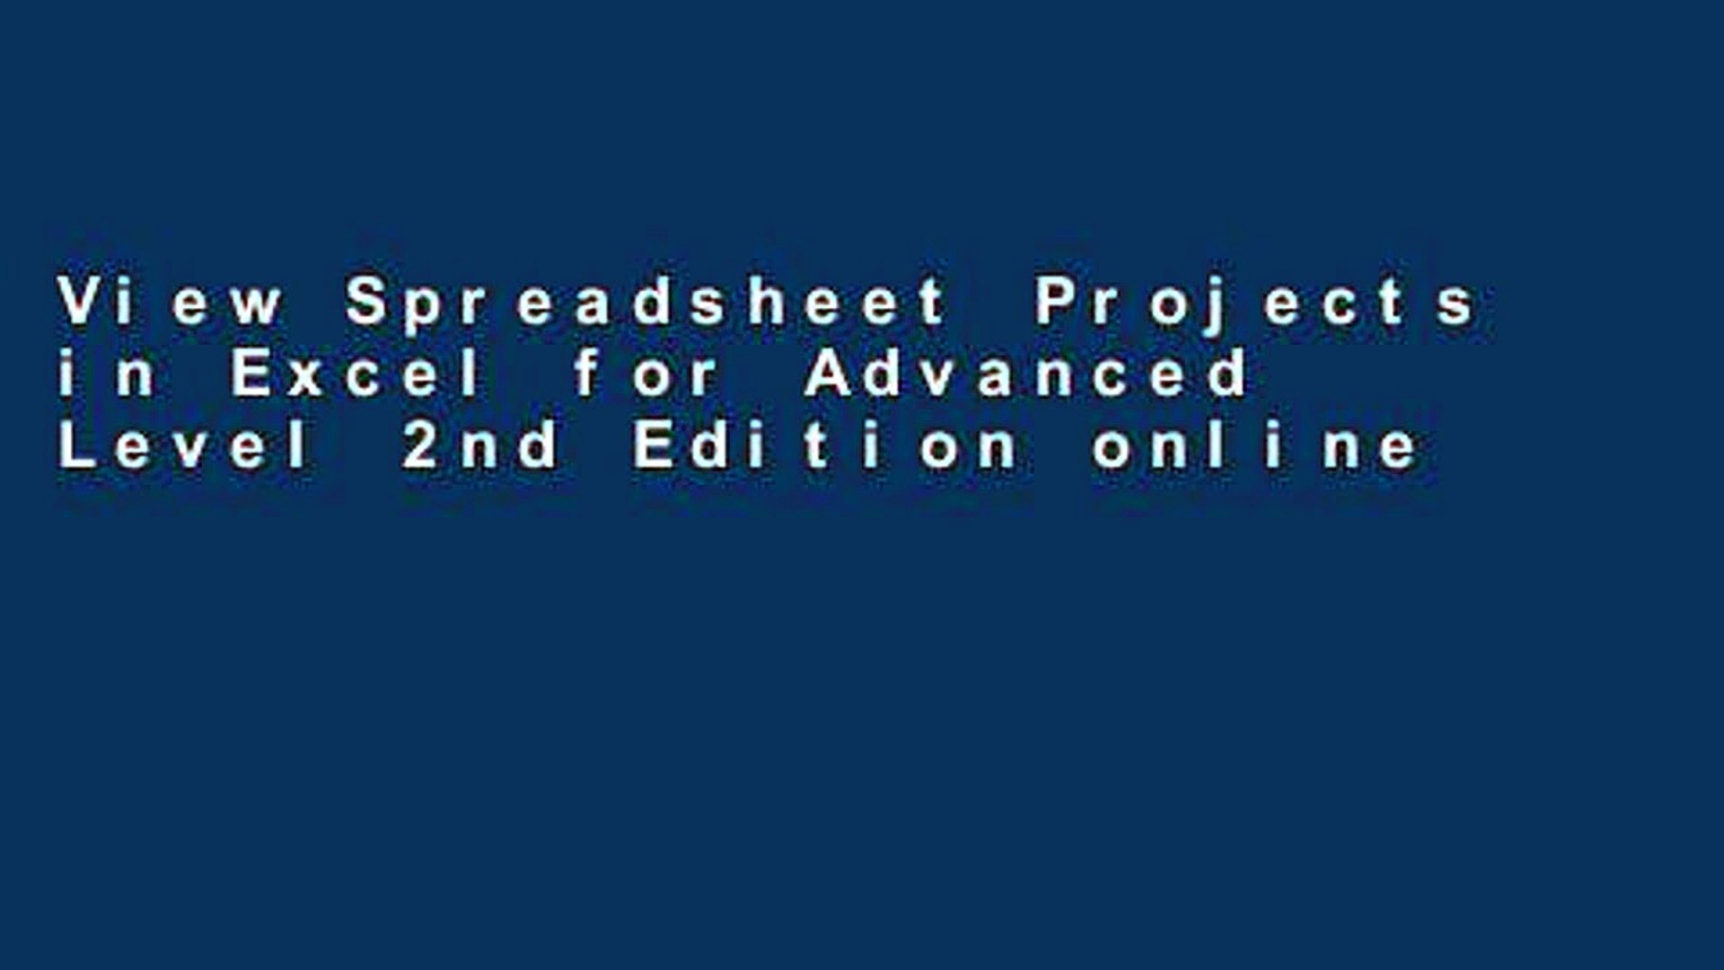 View Spreadsheet Online In View Spreadsheet Projects In Excel For Advanced Level 2Nd Edition